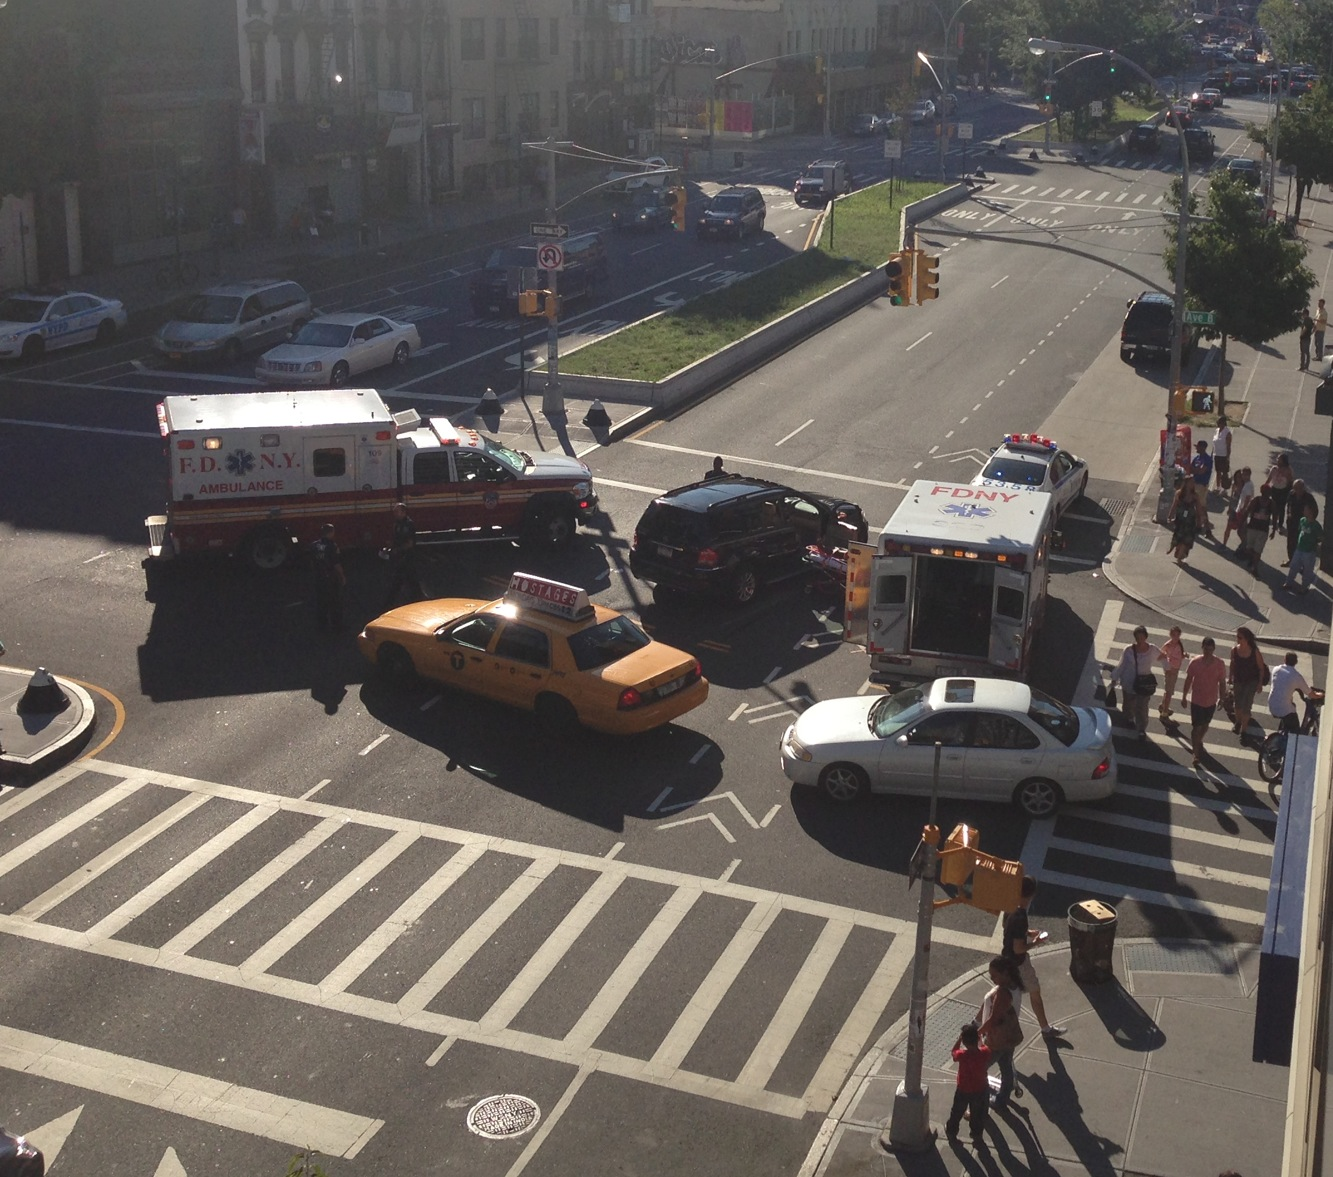 EV Grieve: More Accidents On East Houston Street